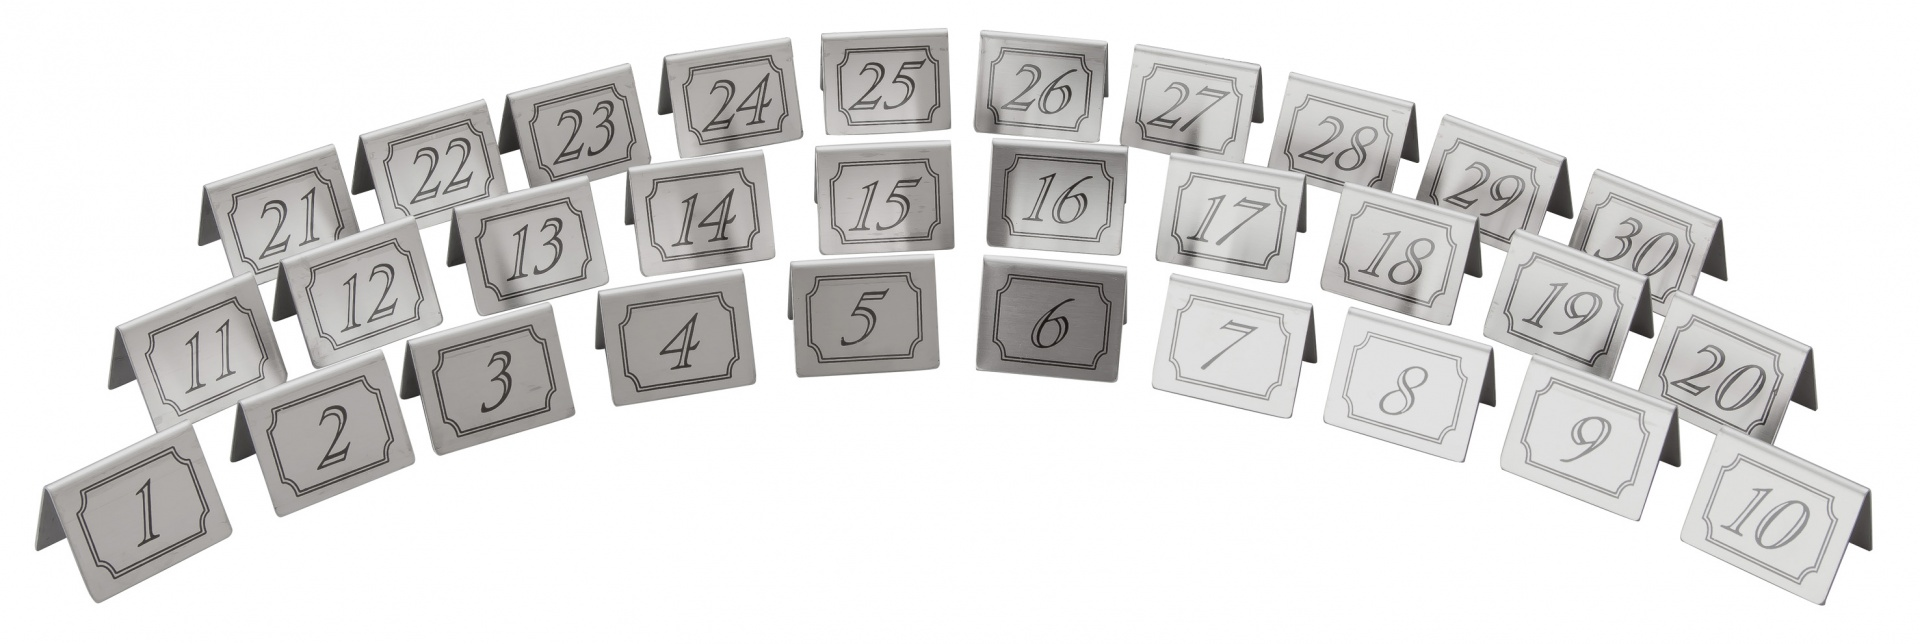 Individual Stainless Steel Table Numbers Beaumont TM - Stainless steel table numbers